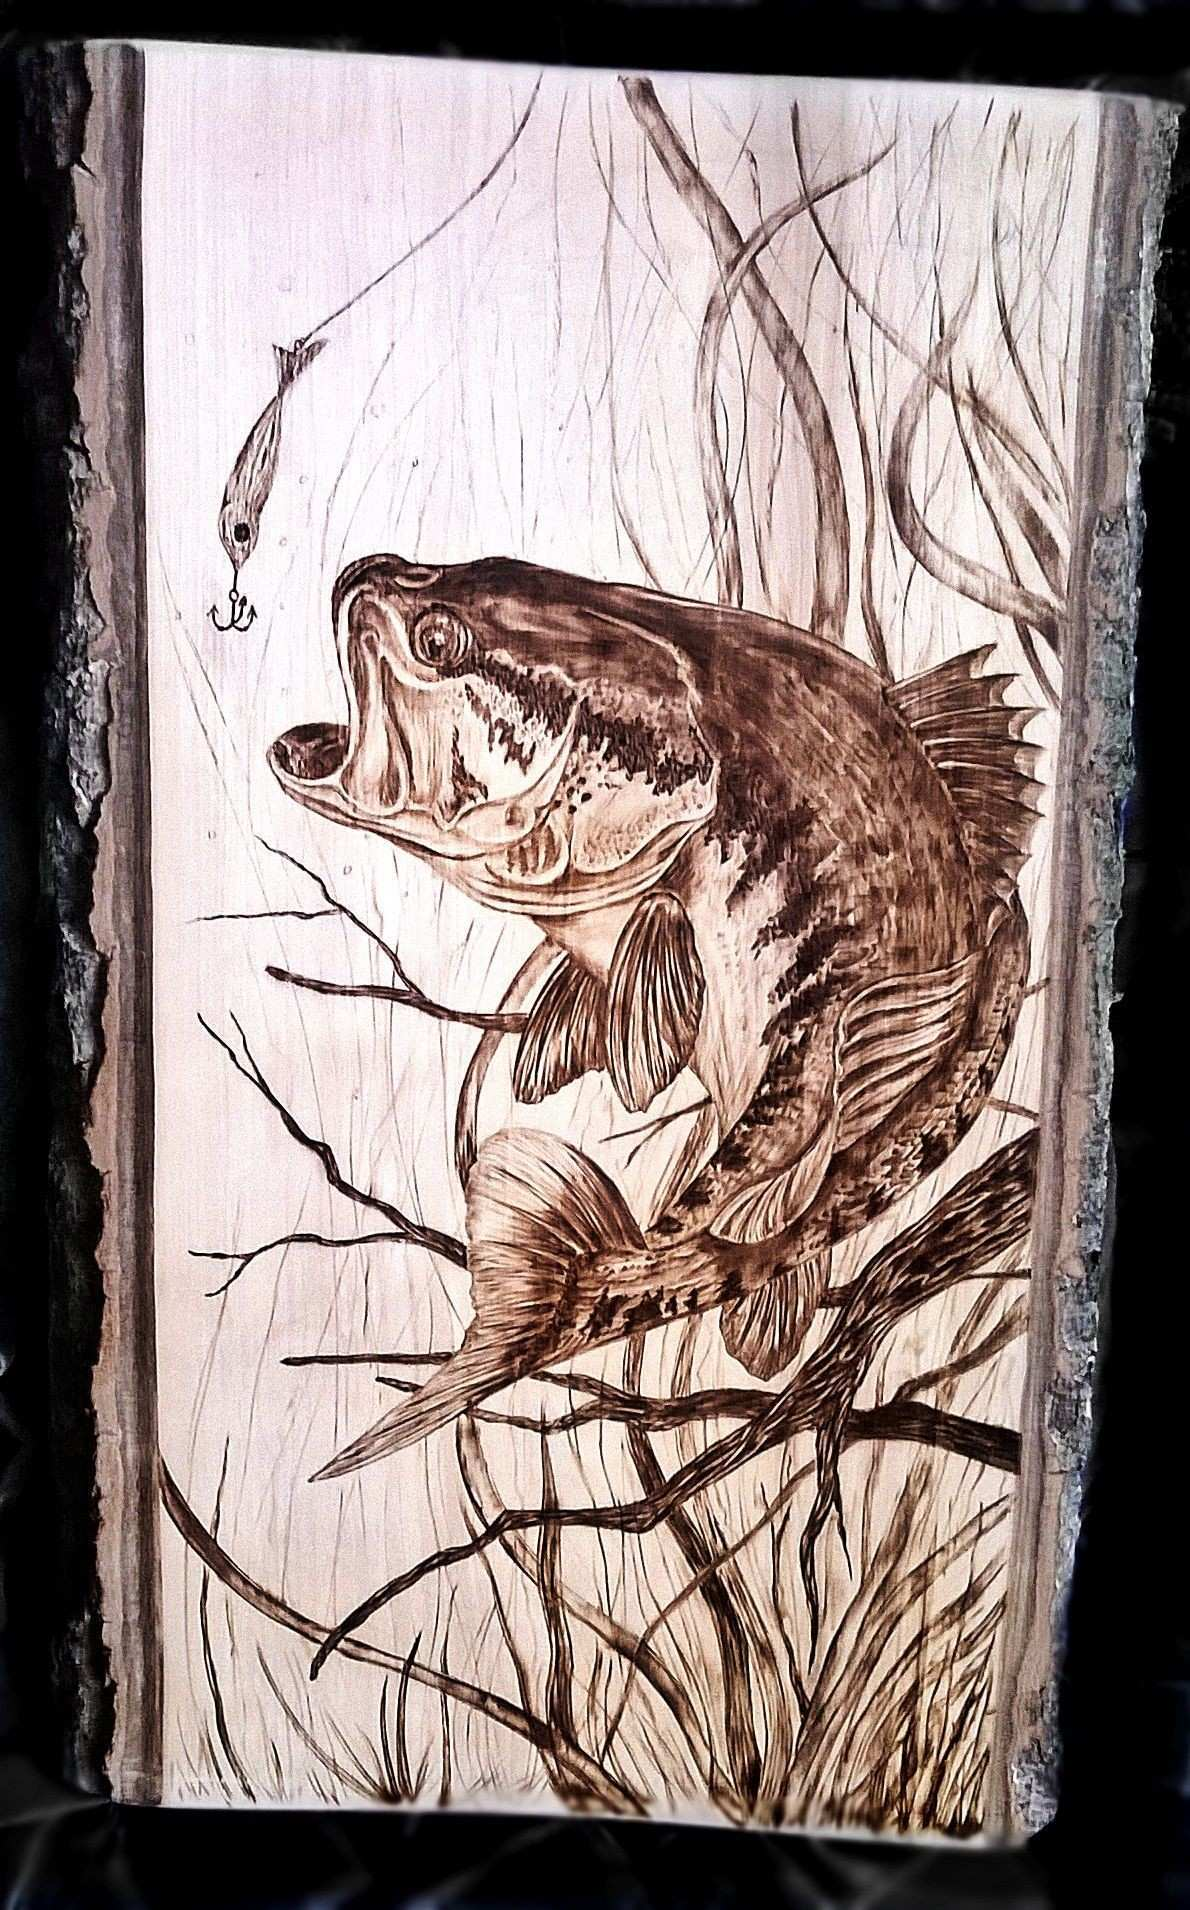 bass fish pyrography woodburning by art caren dboam0j 1 190